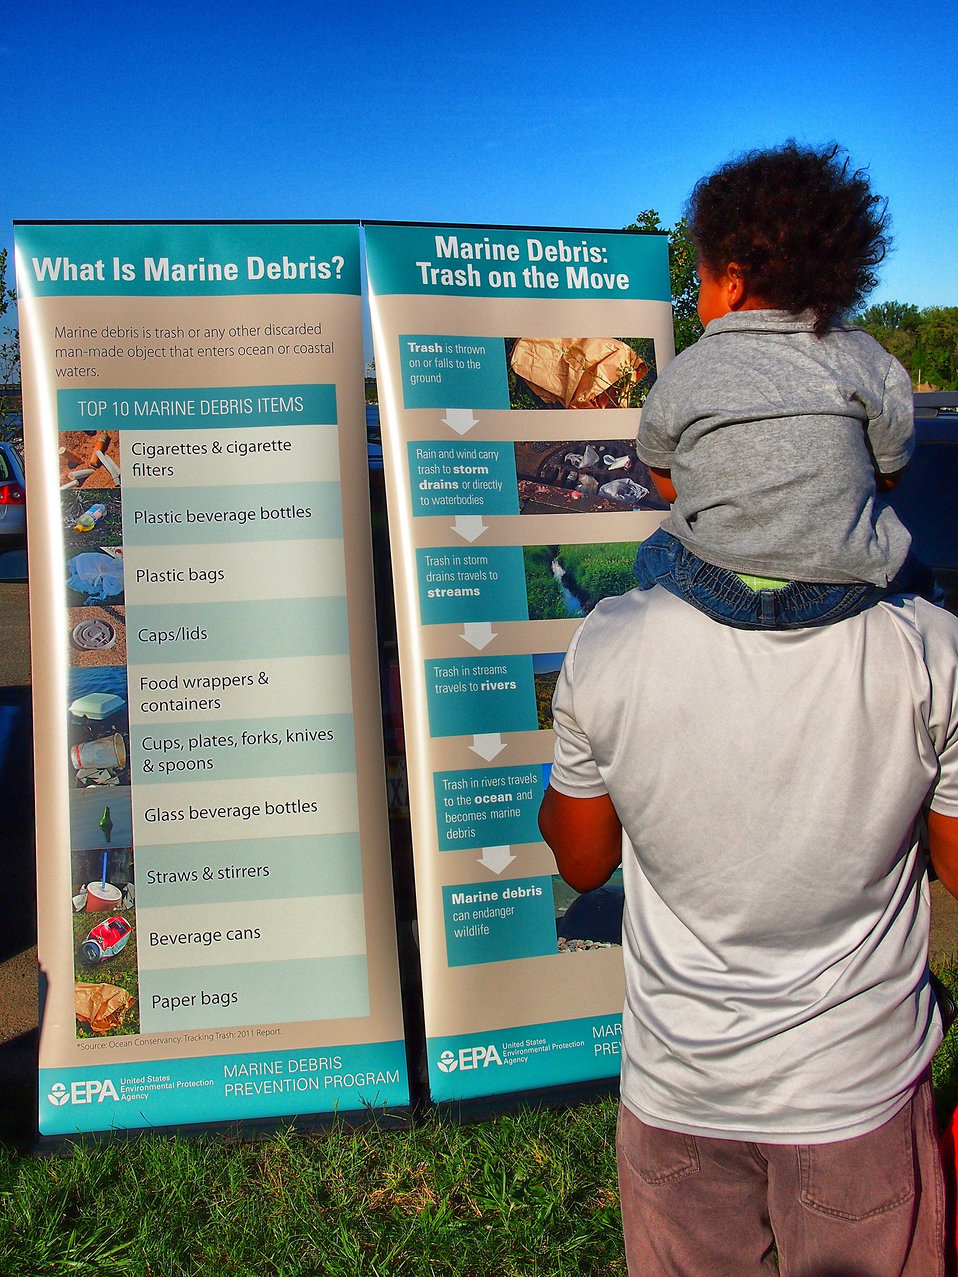 September 15, 2012 Father and son learn about marine debris at Anacostia River cleanup